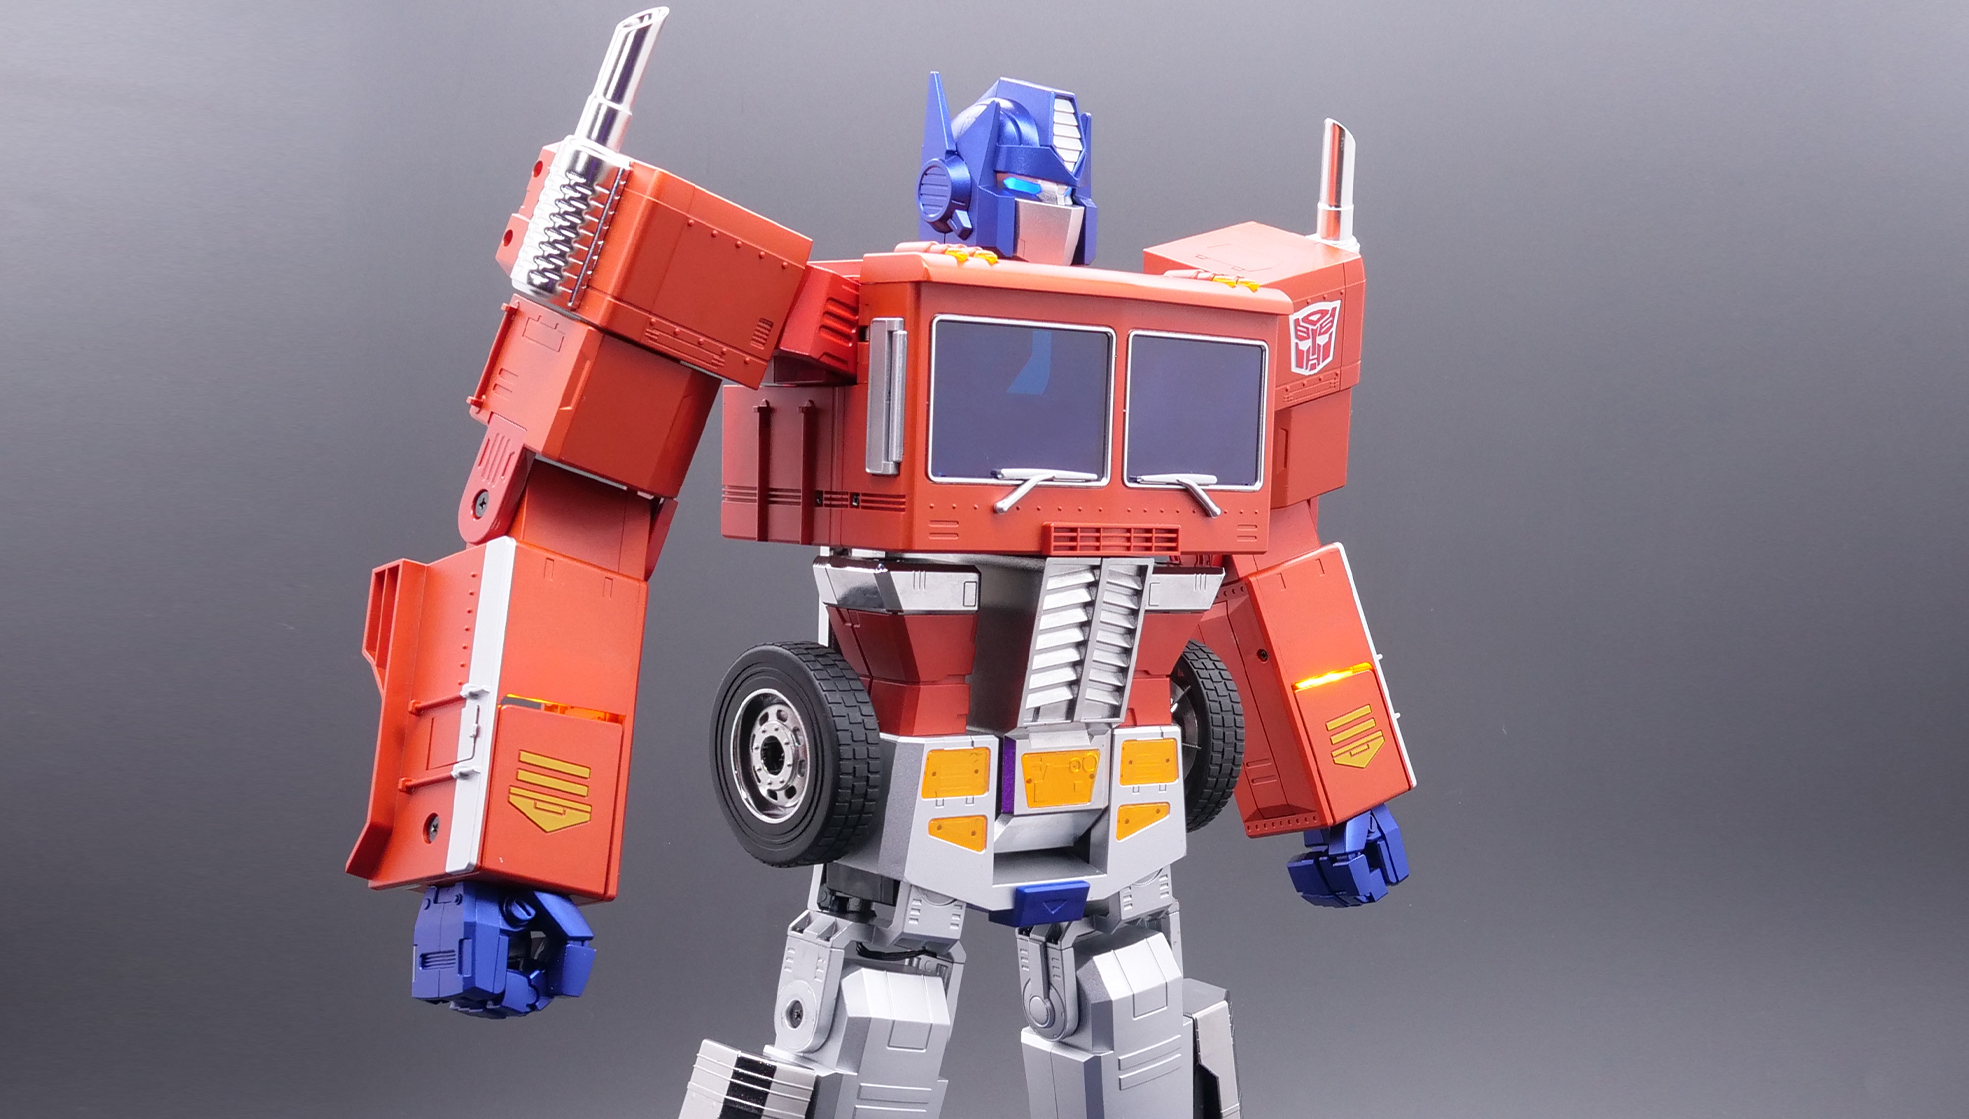 Optimus Prime toy that can transform on its own from Hasbro